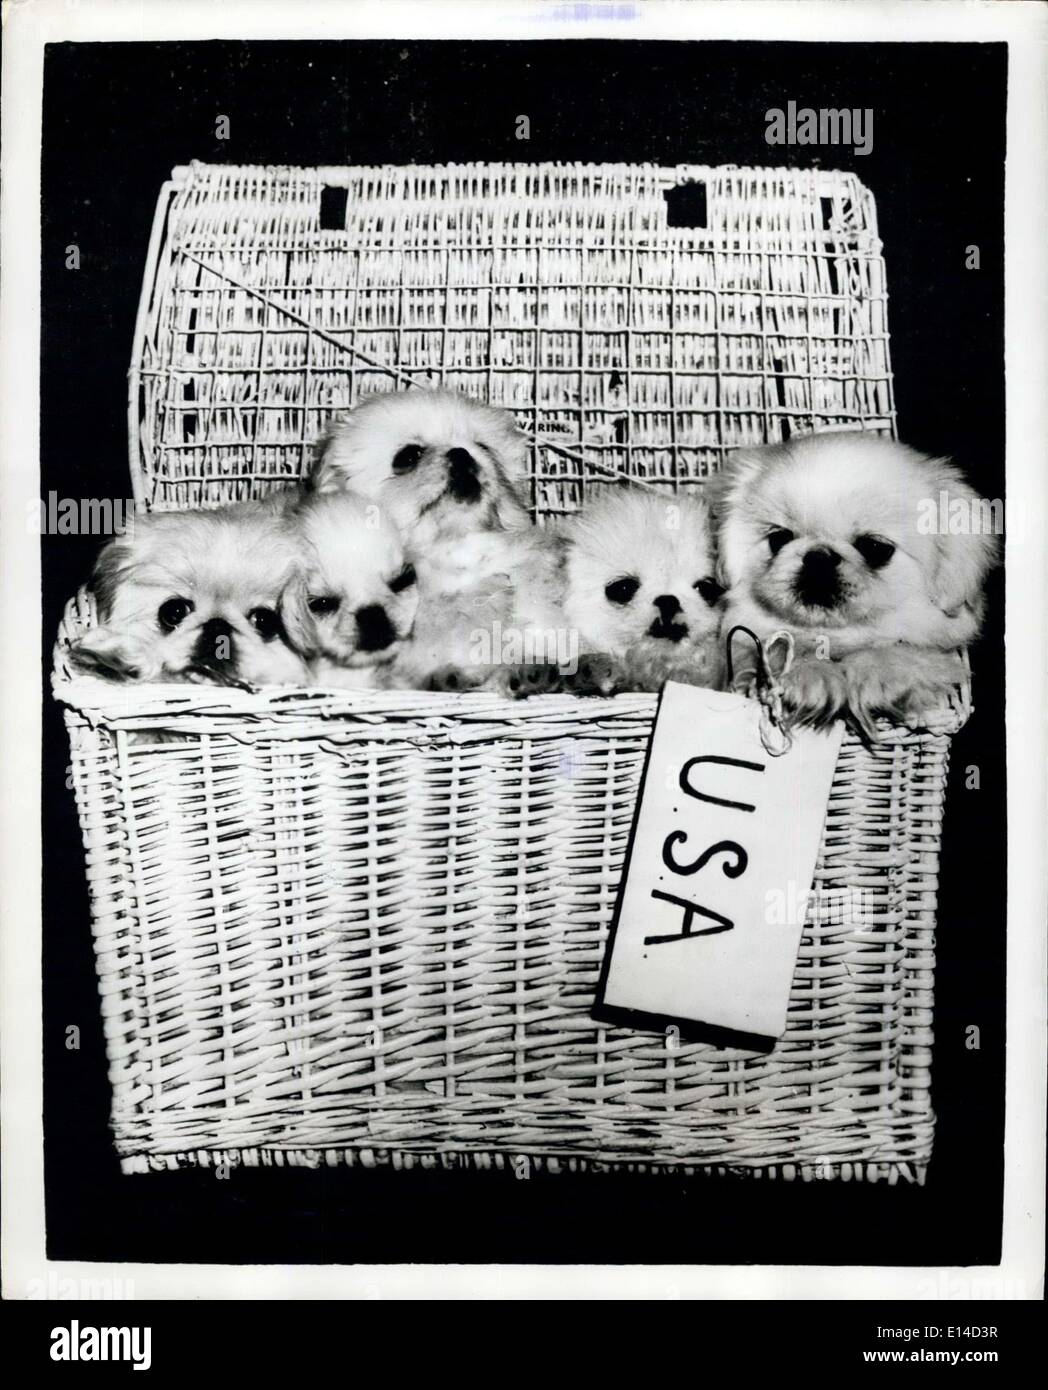 Apr. 17, 2012 - Emigrants ; White Pekingese from the well-known kennels of Mrs. R. Waring at Cobham, Surrey, England regularly make the Atlantic crossing. Picture shows Five white Pekingese take a last peek at London before leaving by air new lives in the U.S. - Stock Image